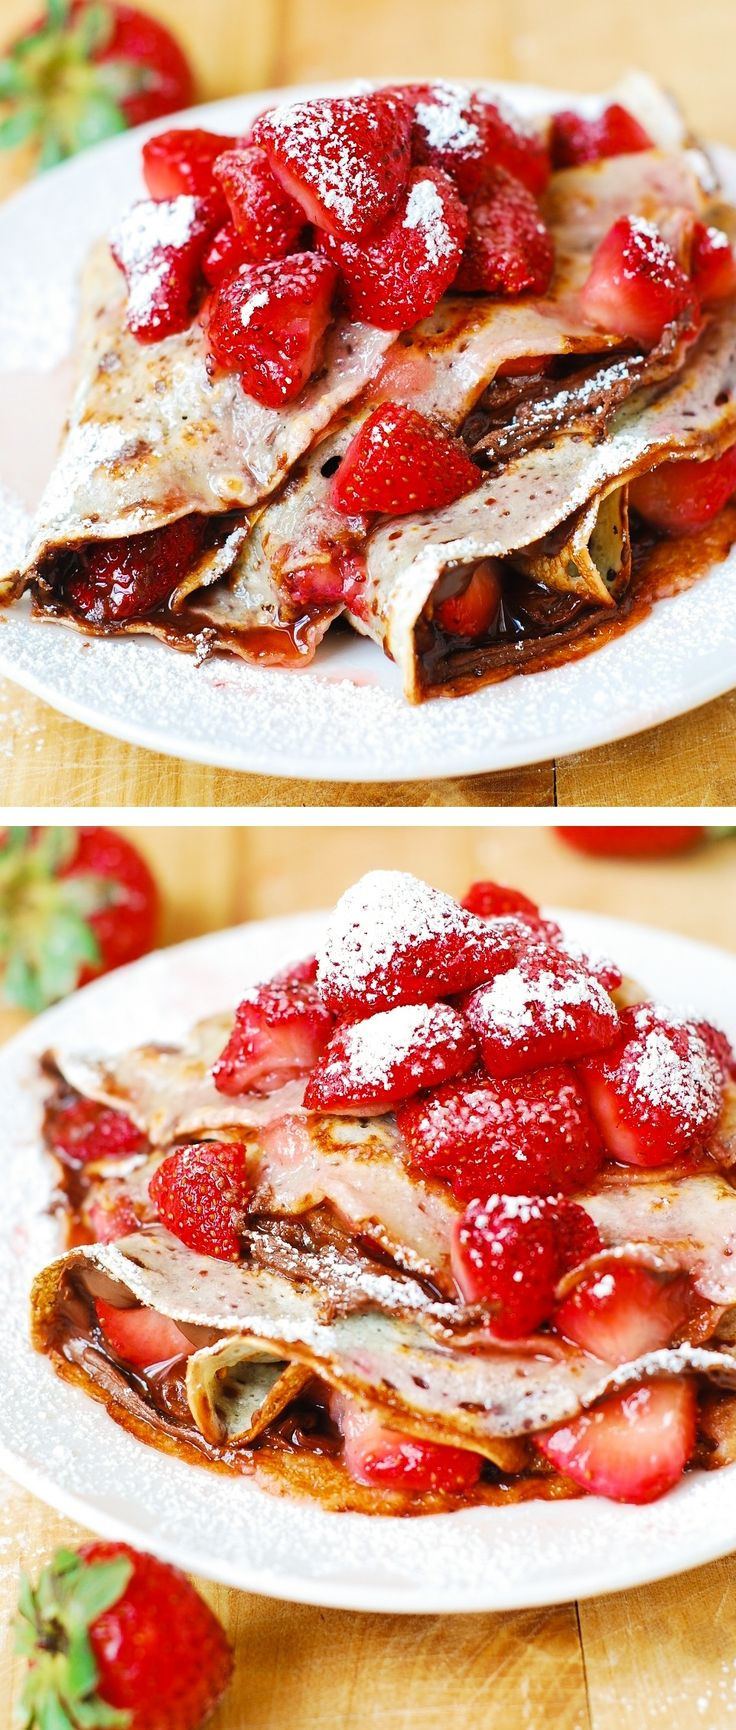 Strawberry & Nutella crepes, sprinkled with powdered sugar! Perfect for Summer breakfast or dessert!